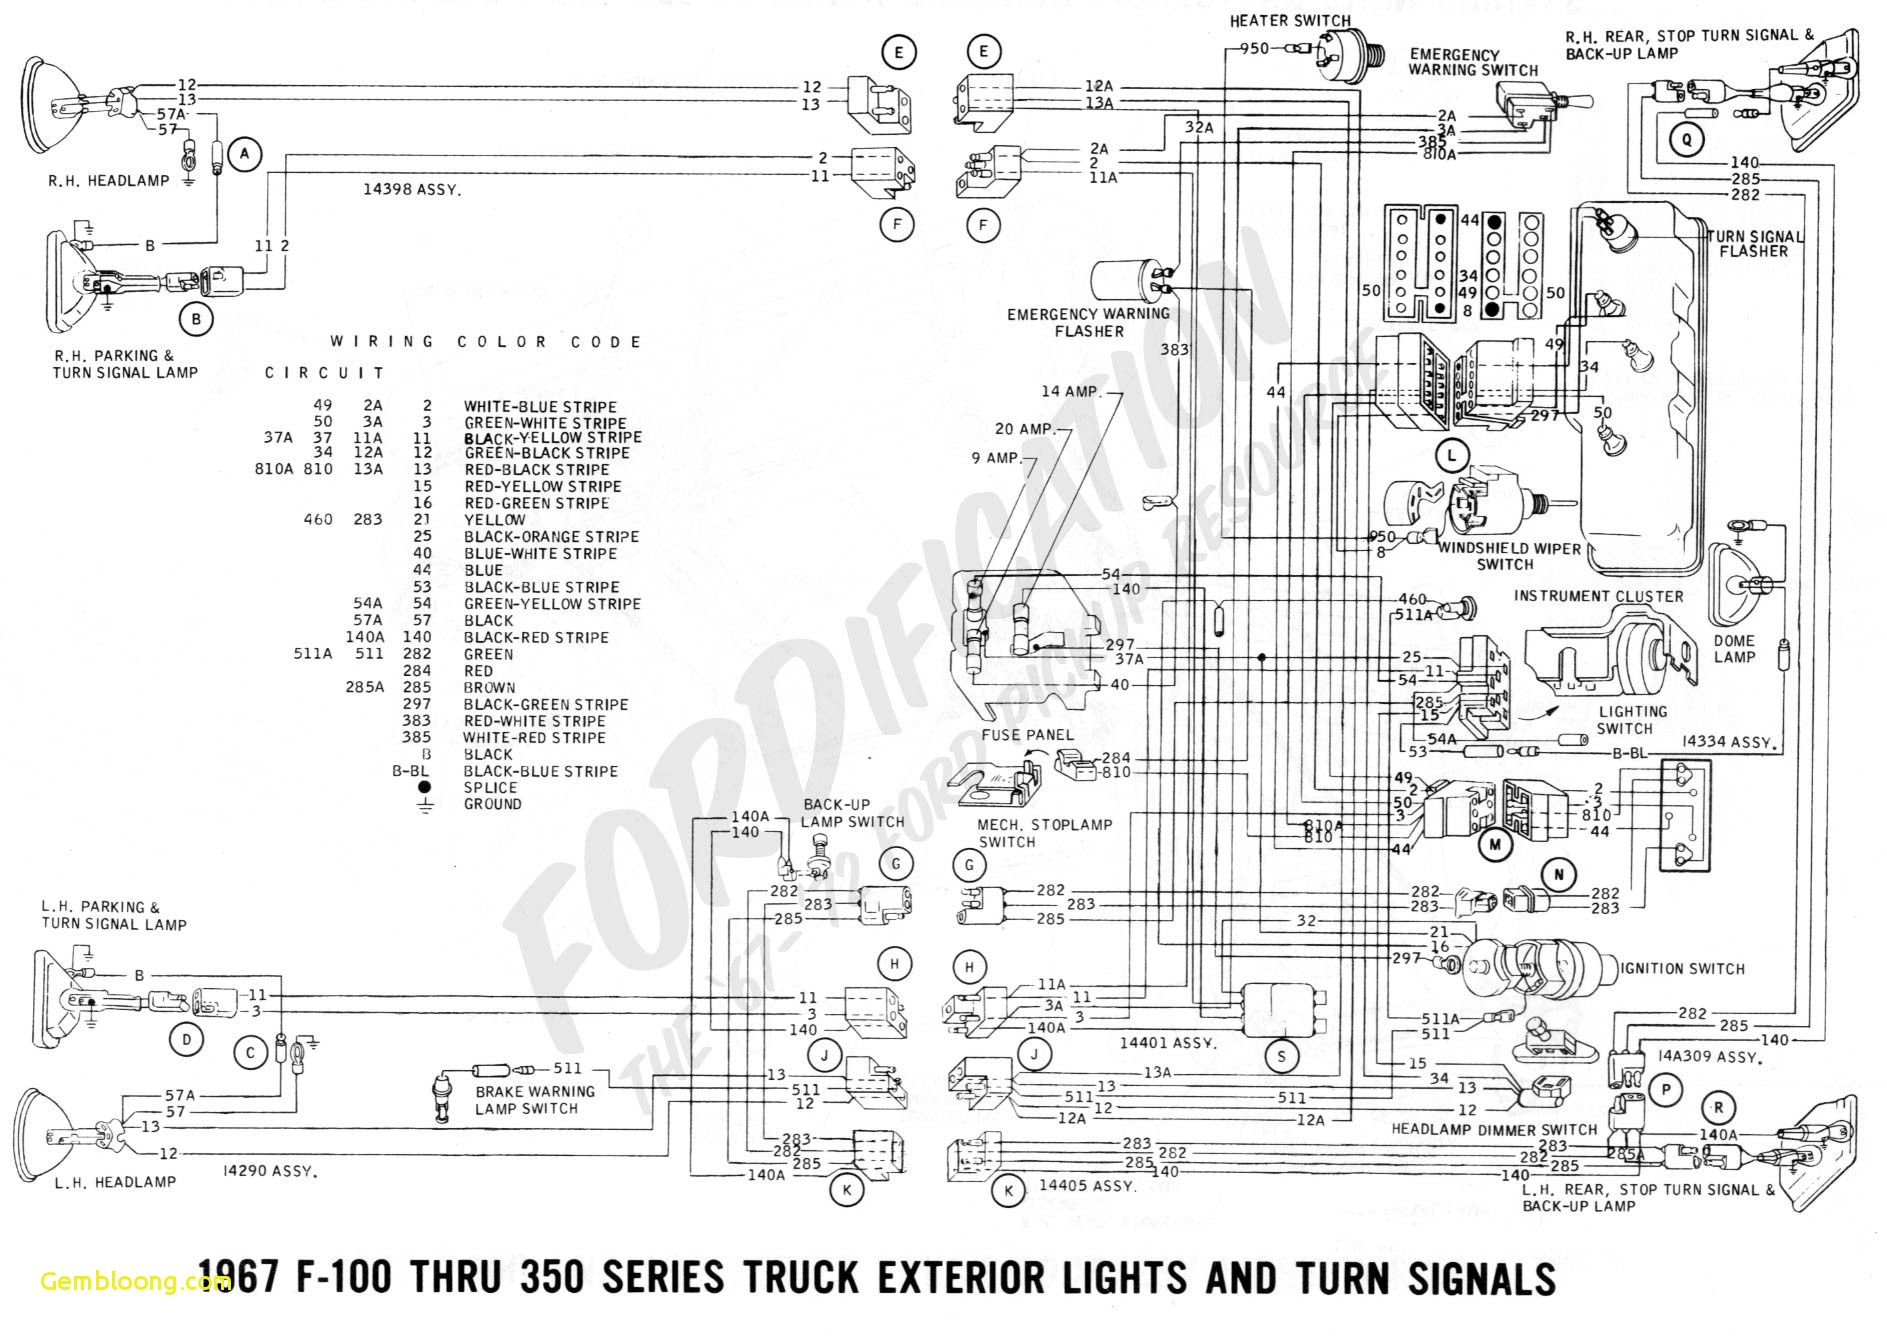 Truck Drivetrain Diagram Download ford Trucks Wiring Diagrams ford F150 Wiring Diagrams Best Of Truck Drivetrain Diagram